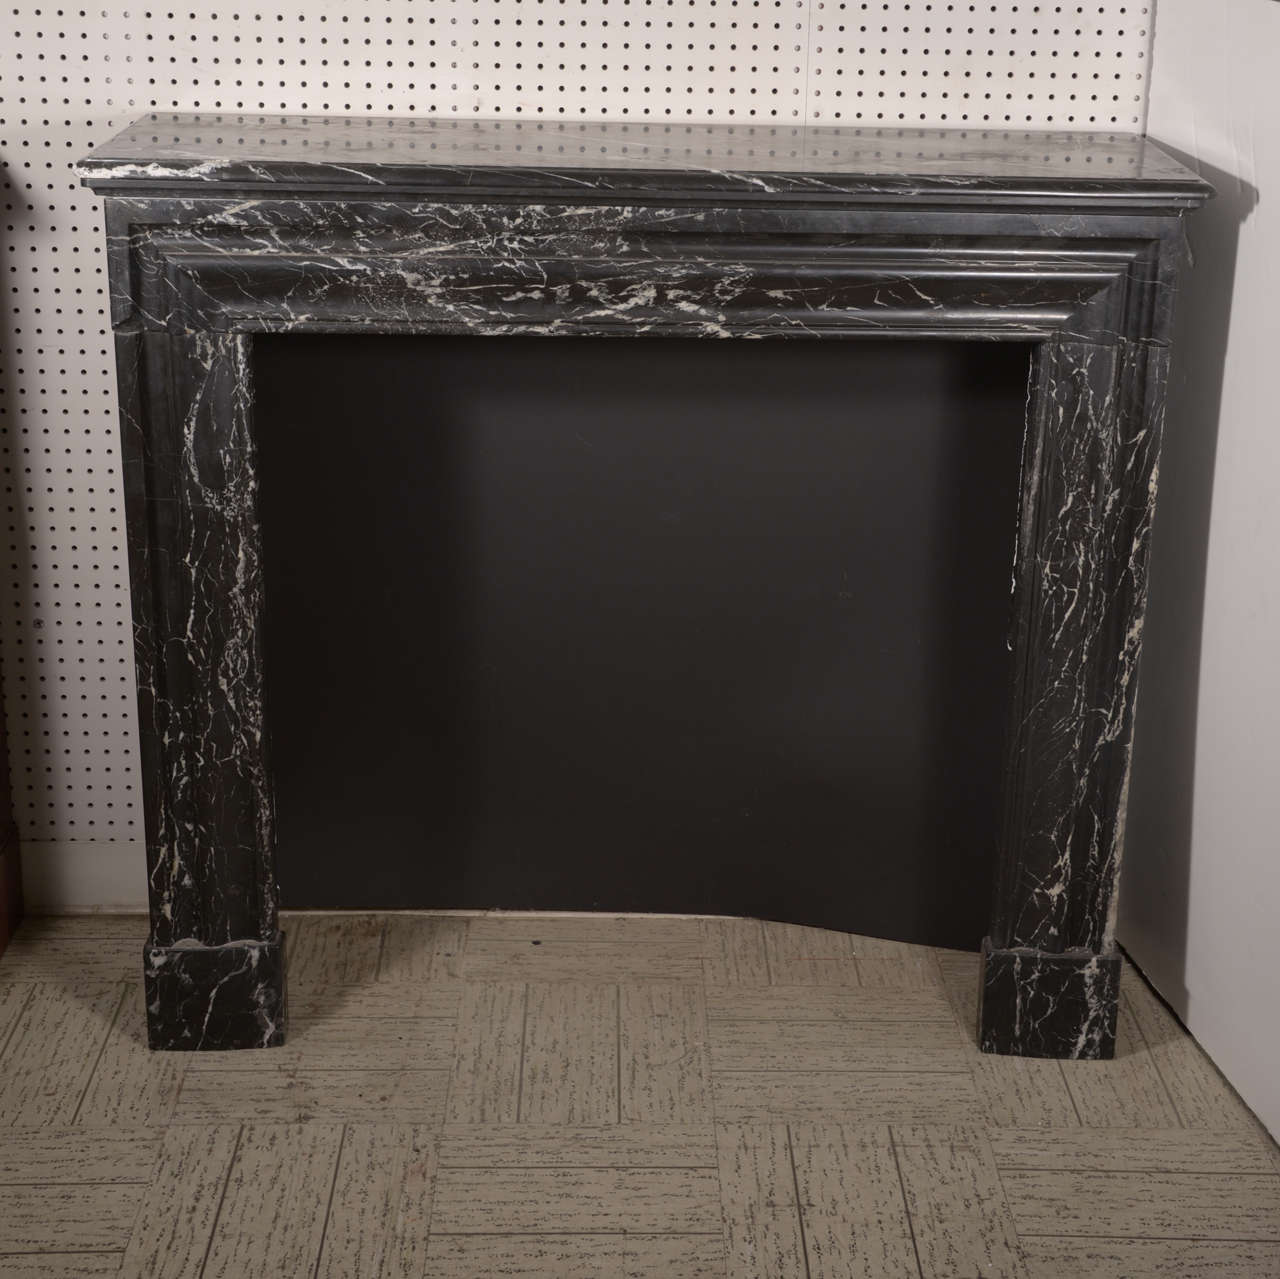 Black Veined Fireplace Marble Mantel For Sale At 1stdibs